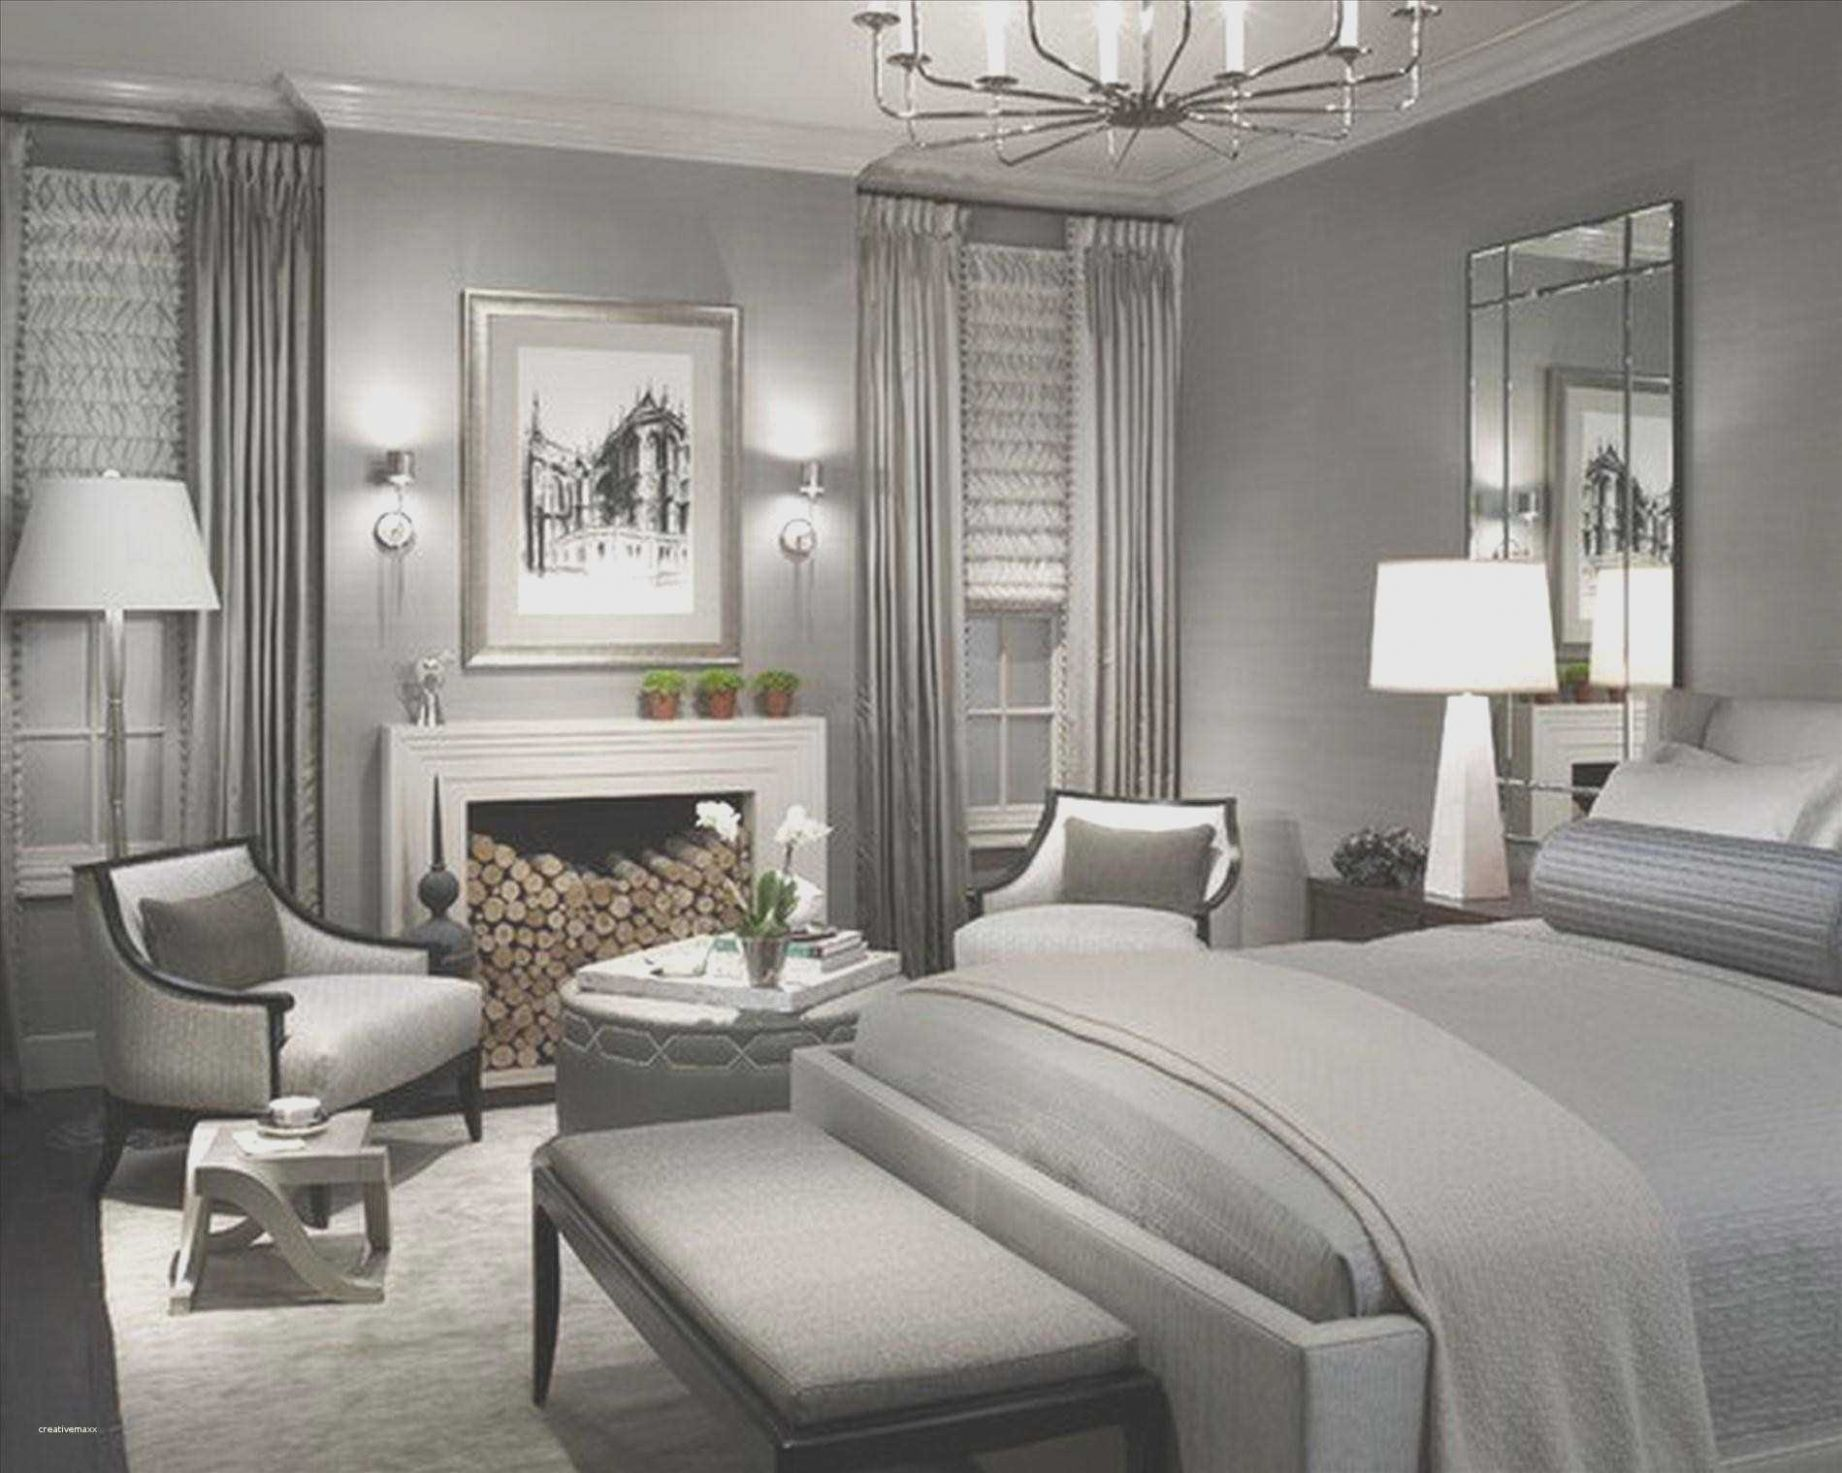 New Romantic Master Bedroom Ideas On A Budget Creative ..